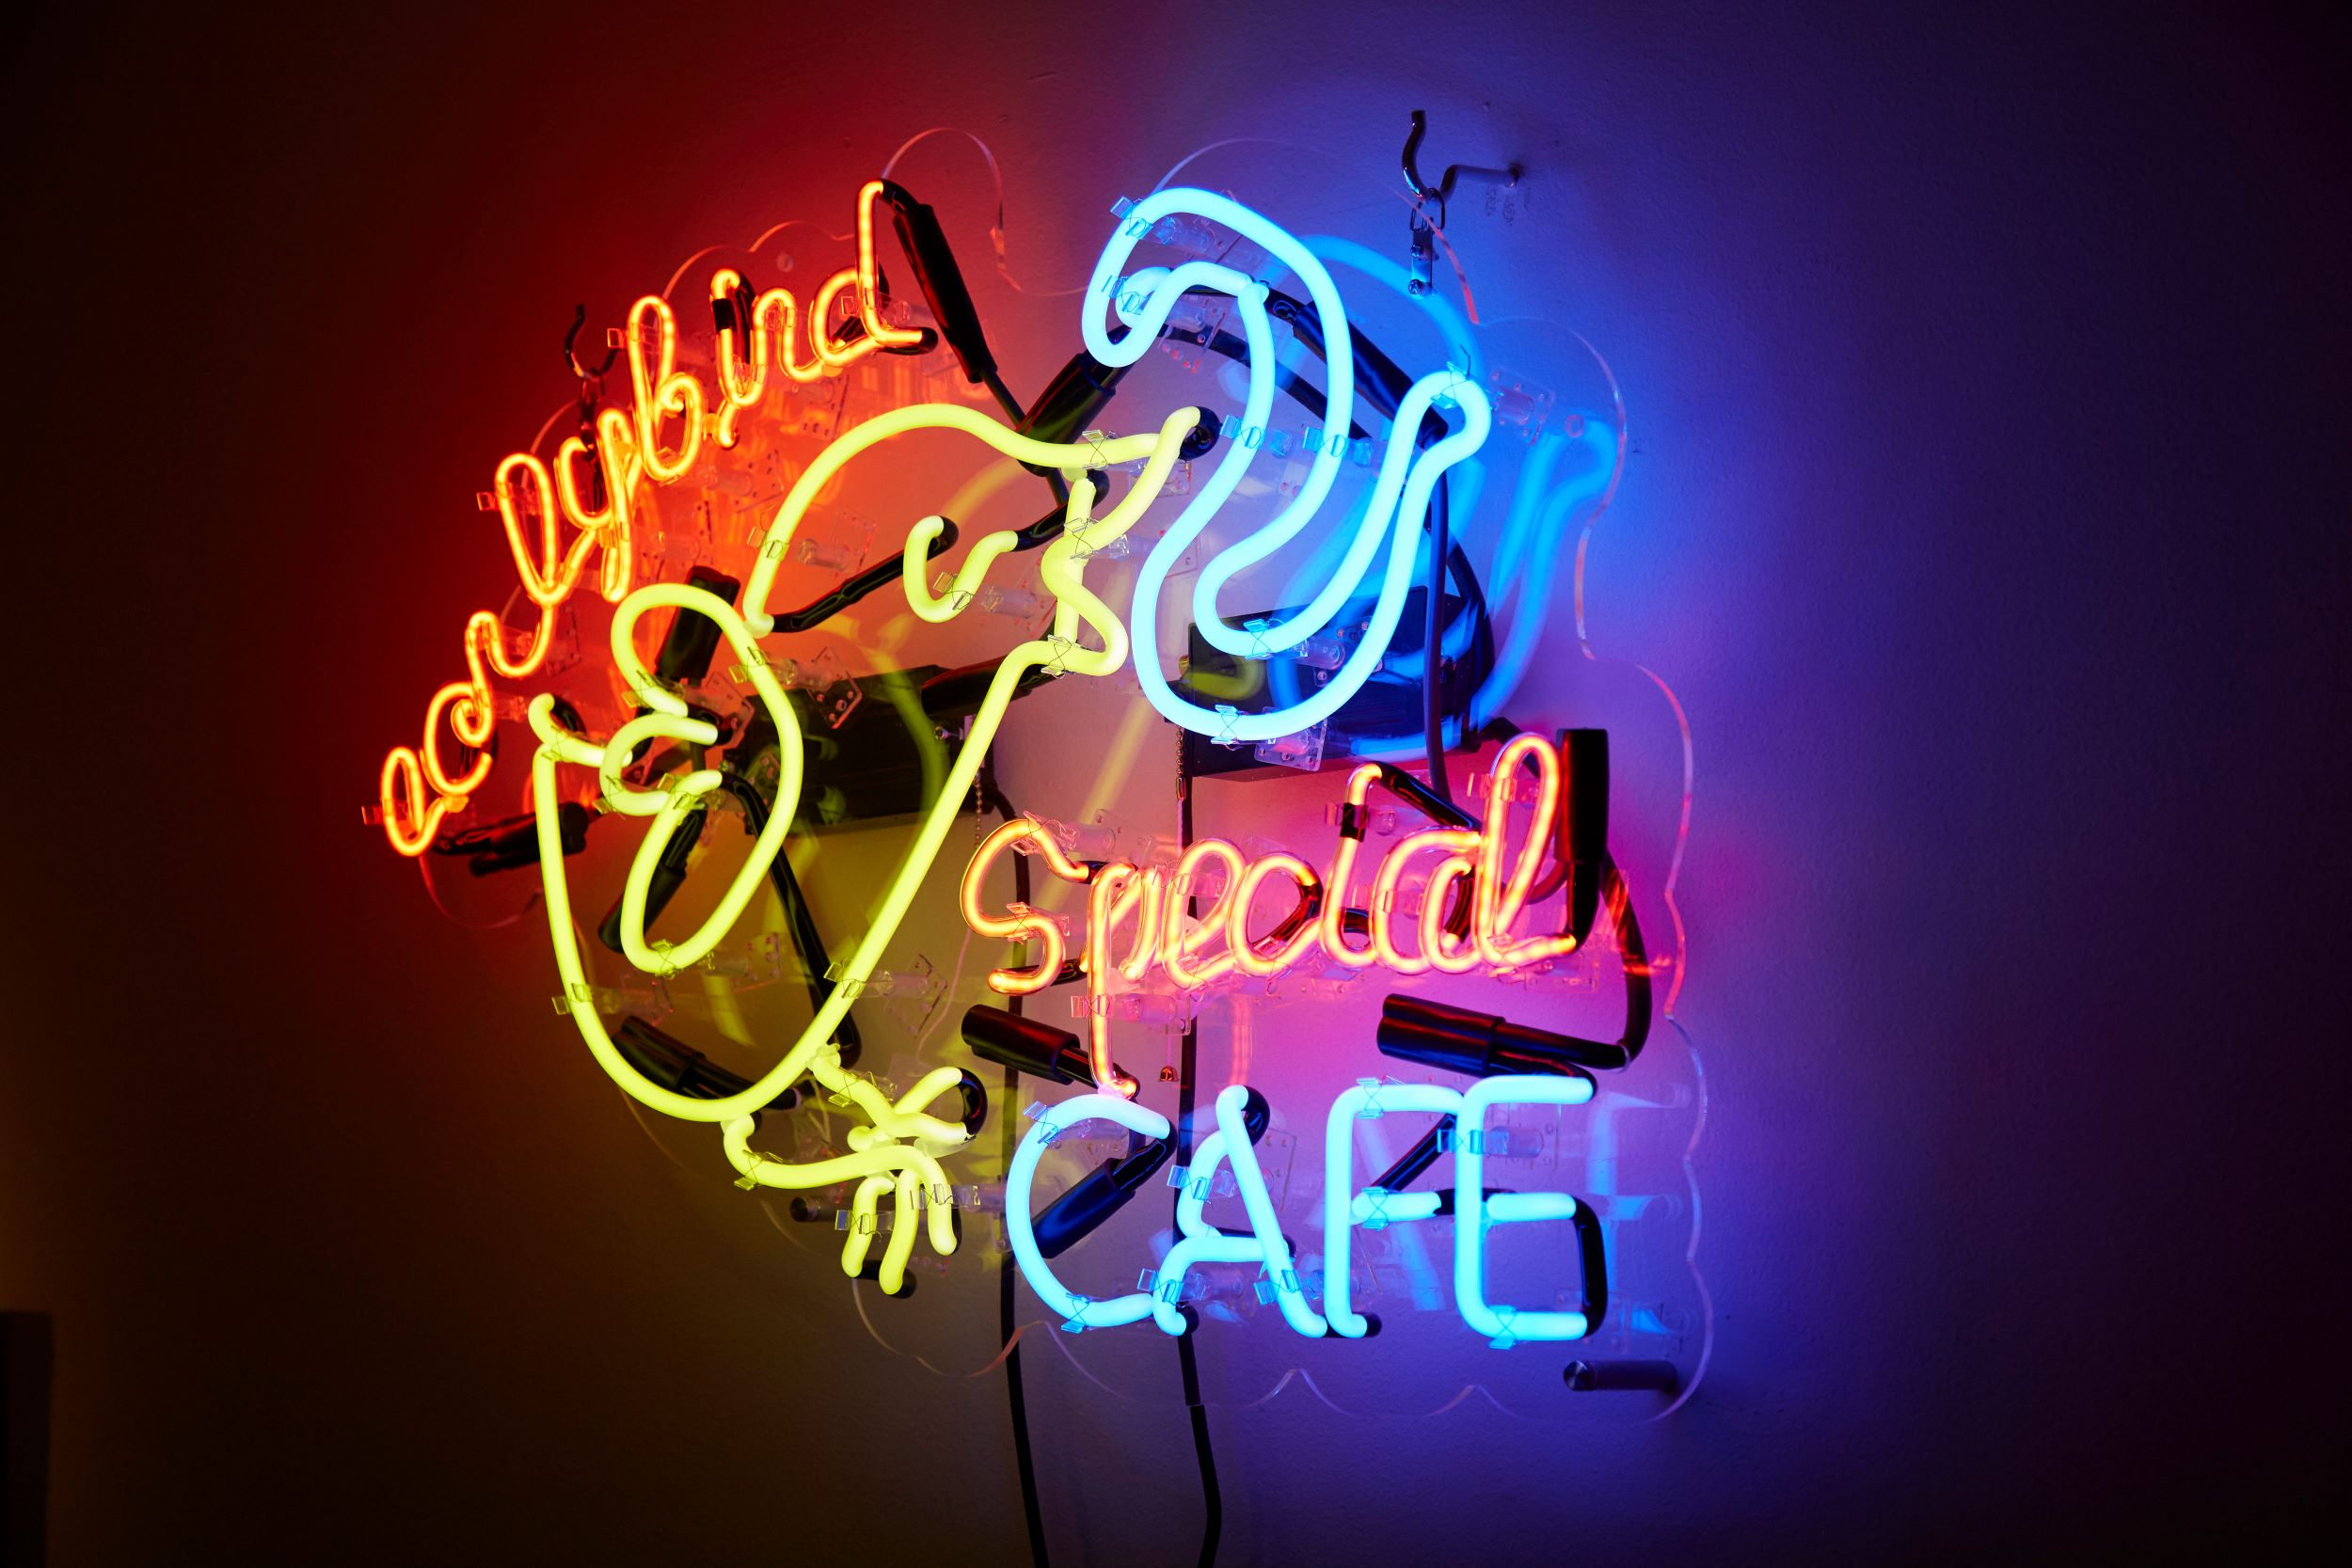 Early Bird Special Cafe